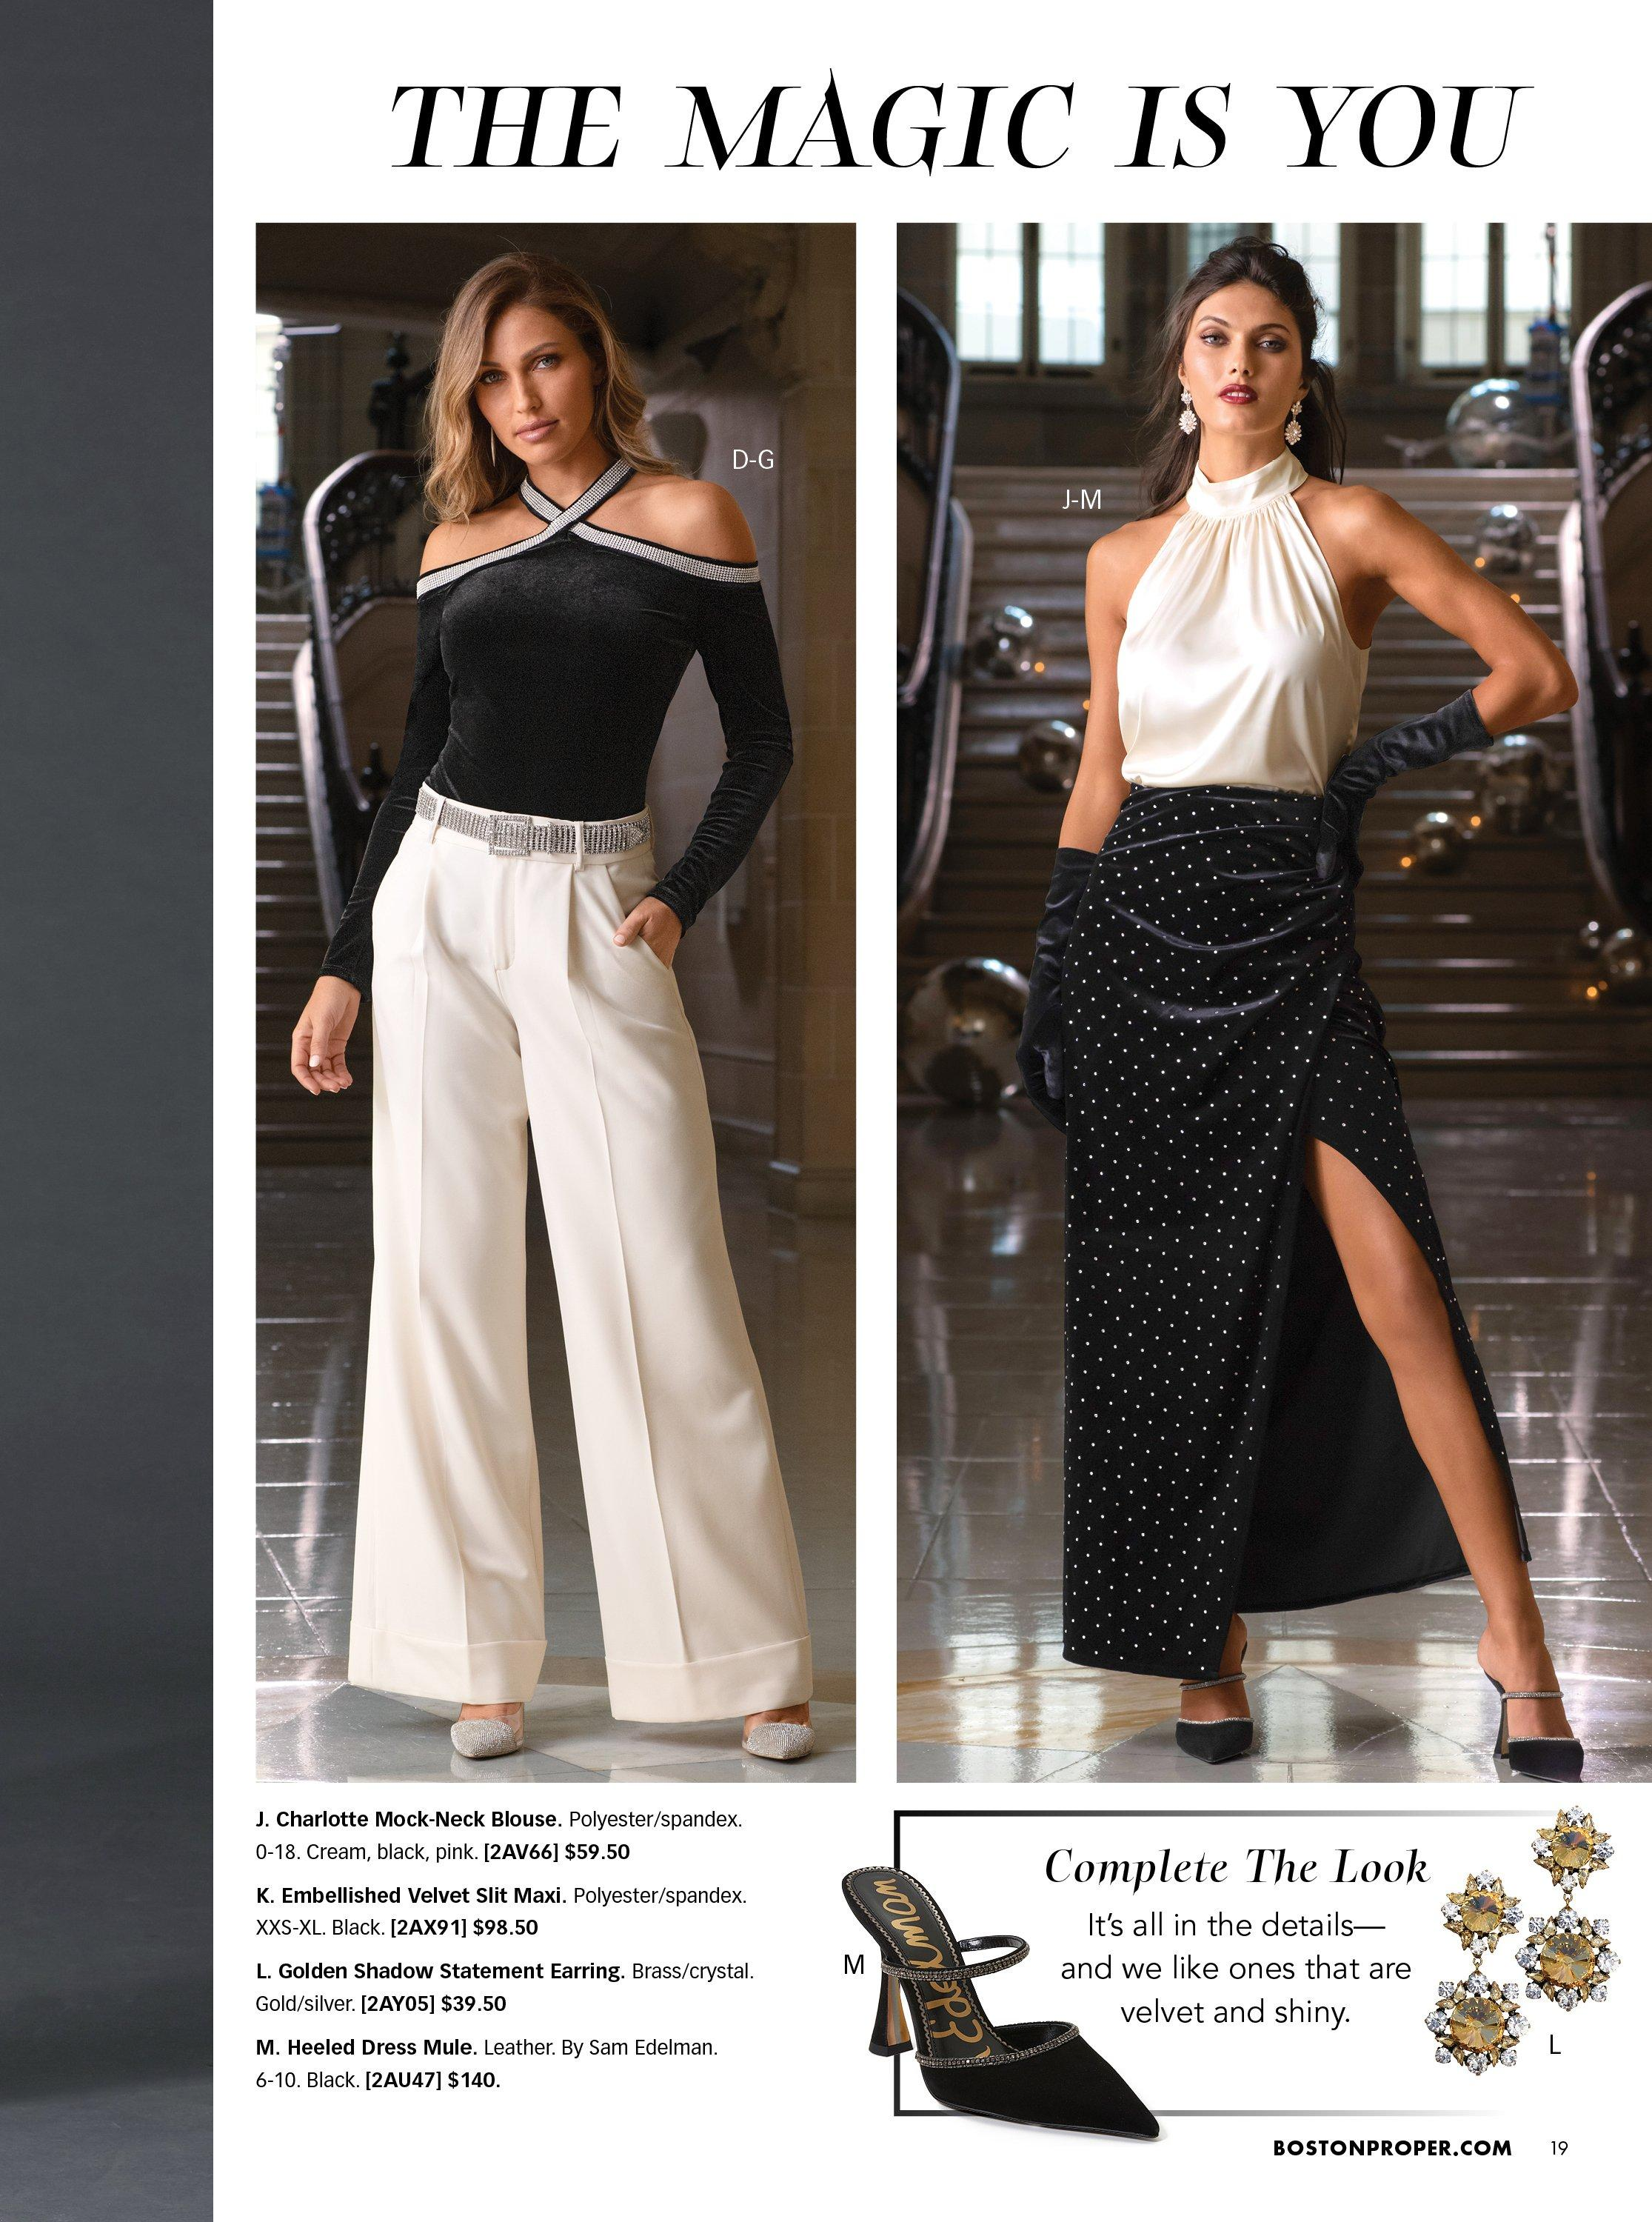 left model wearing a black crisscross off-the-shoulder top with rhinestones, a rhinestone belt, silver rhinestone vinyl heels, and white high-waisted wide leg pants. left model wearing a white mock-neck sleeveless top, a black studded slit skirt, and black heels. bottom panel shoes black embellished heels and gold and silver dangle earrings.